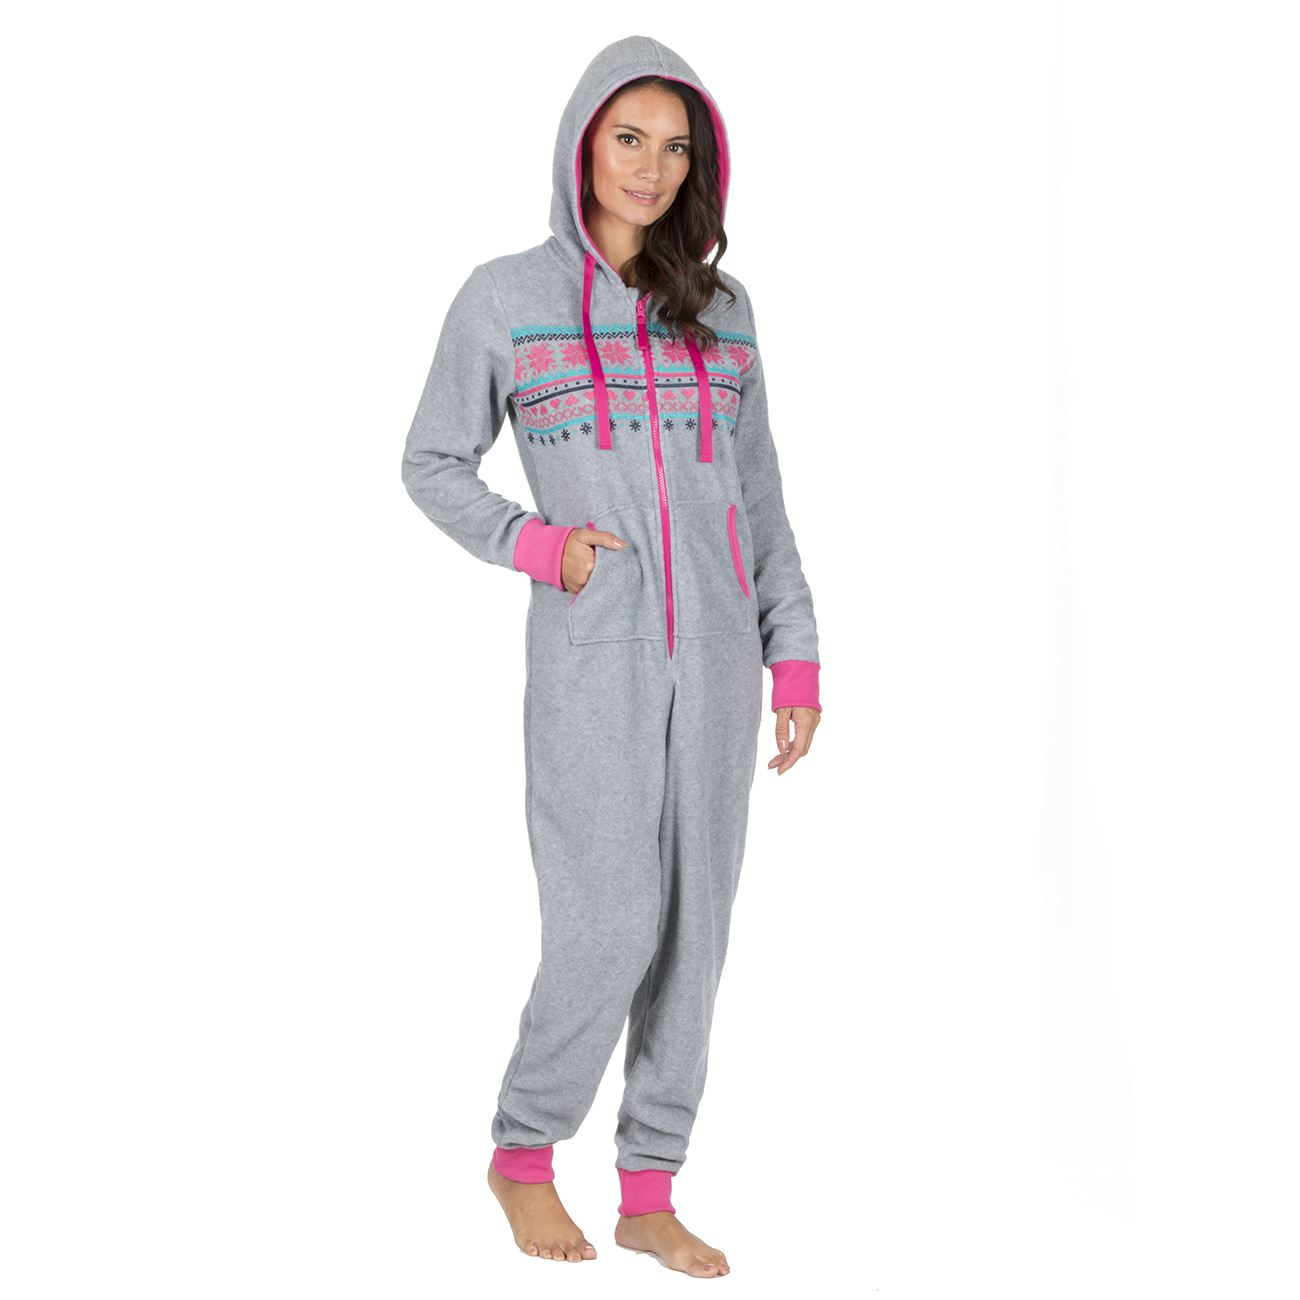 Ladies-Womens-Girls-Fleece-All-In-One-Pyjamas-Outfit-Jumpsuit-Costume-Size-6-18 thumbnail 41